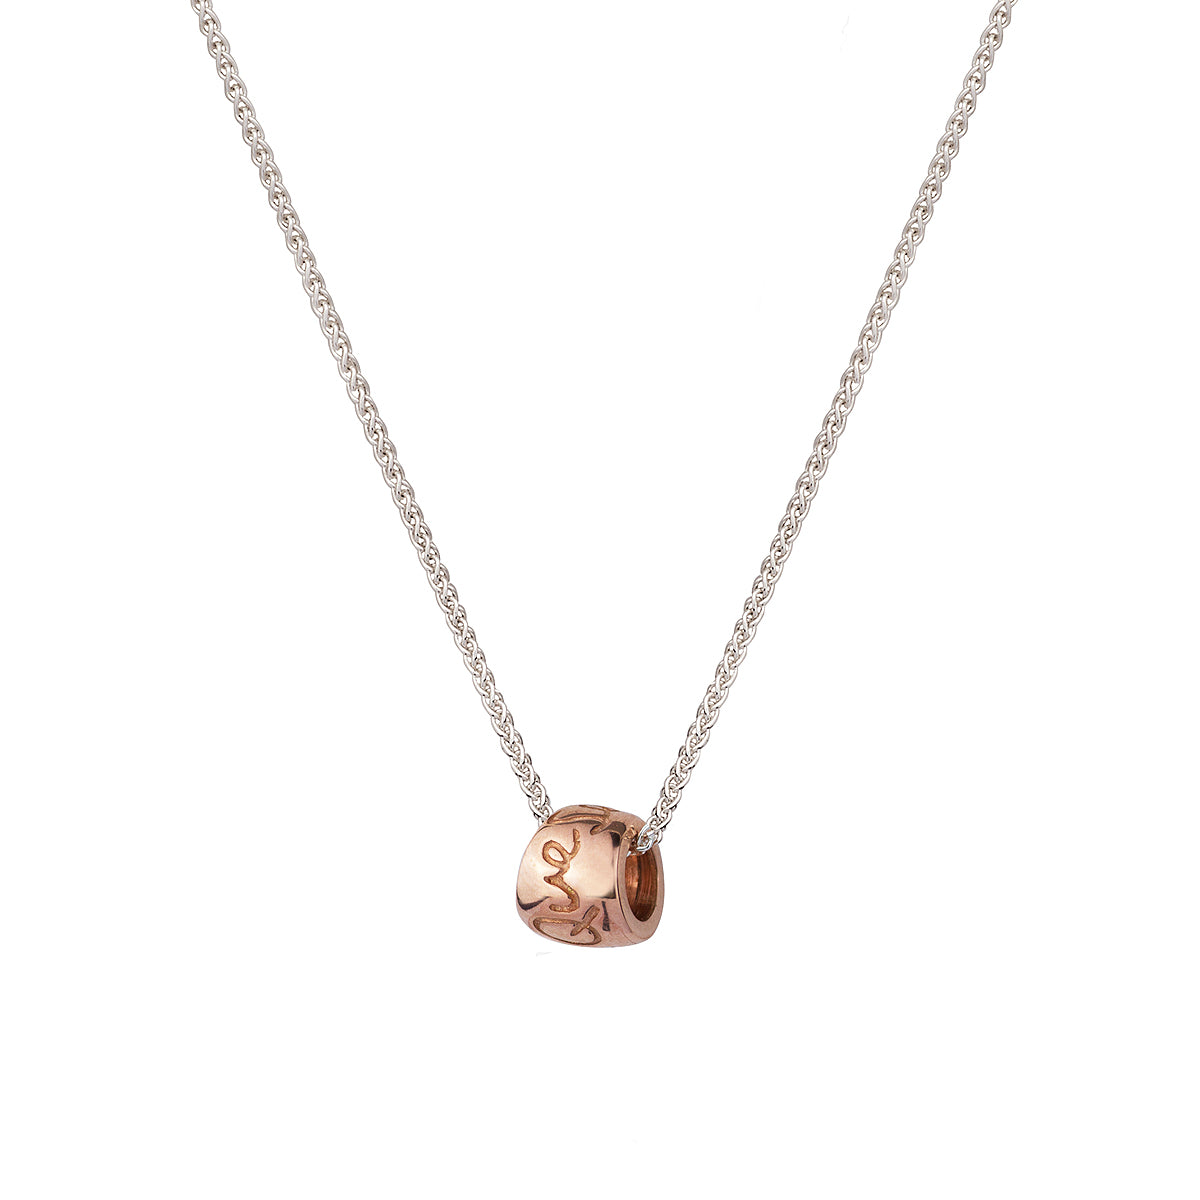 Que Sera Rose Gold Worry Bead Necklace Mindful Slow Fashion Design Scarlett Jewellery UK